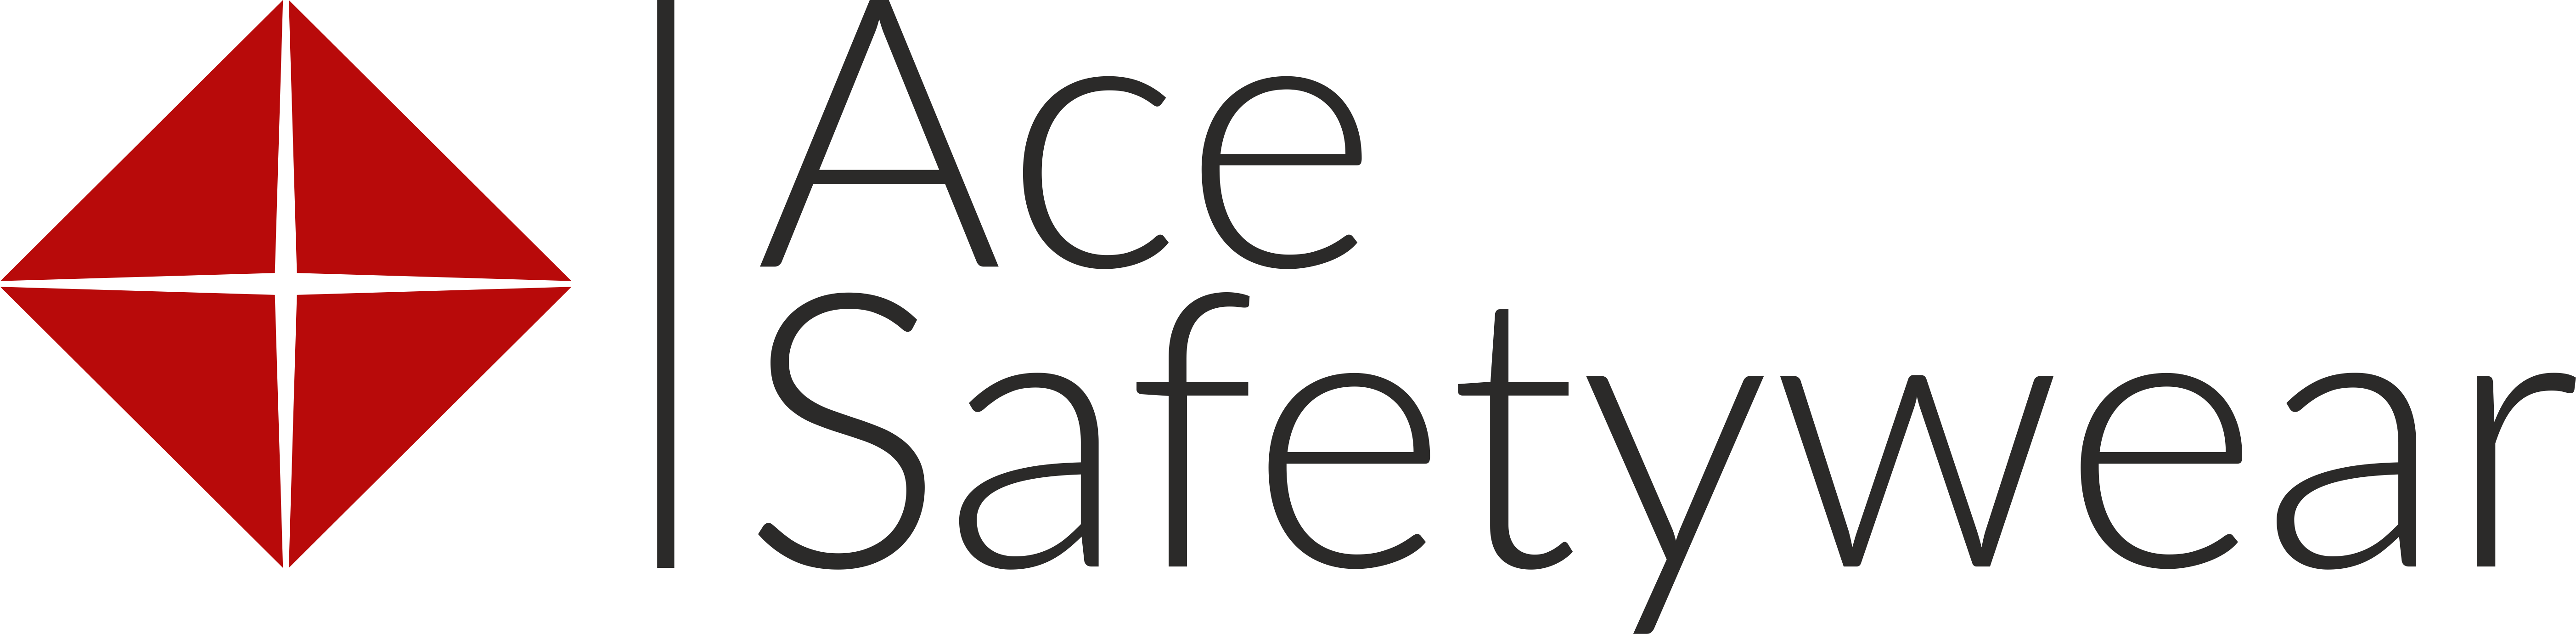 Read Ace Safetywear Reviews